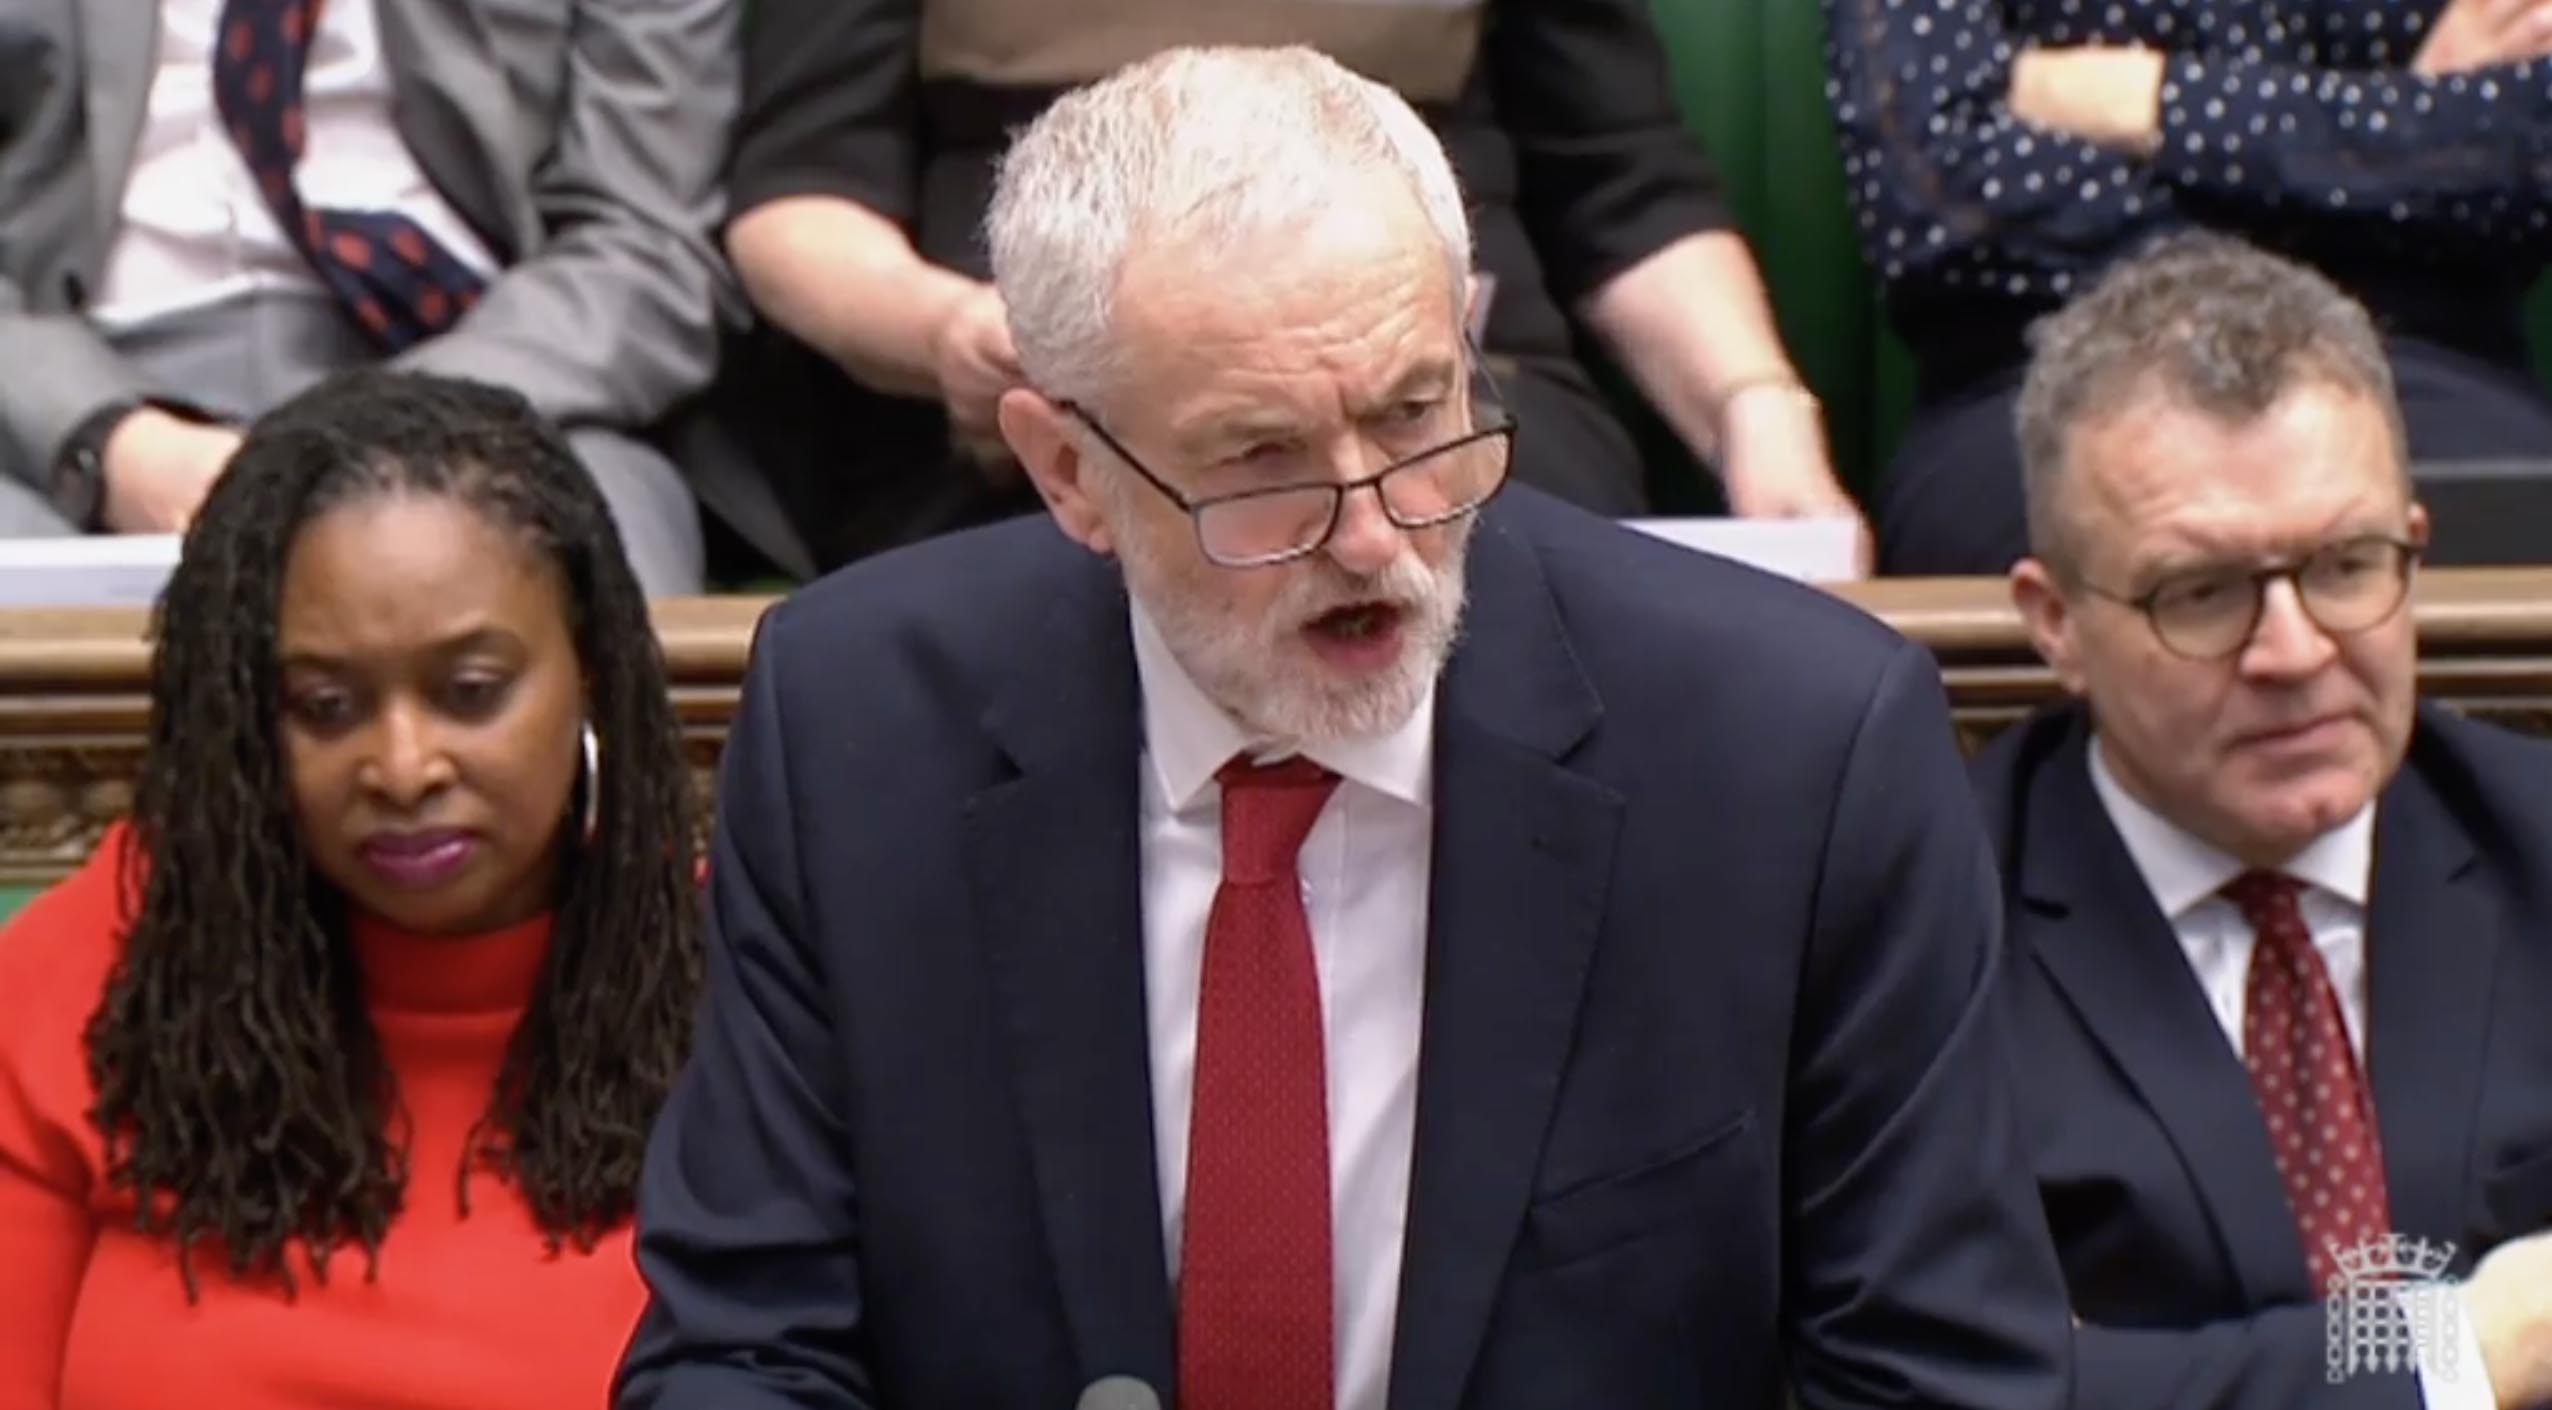 Opposition Labour Leader Corbyn Avoids Clash Over Brexit